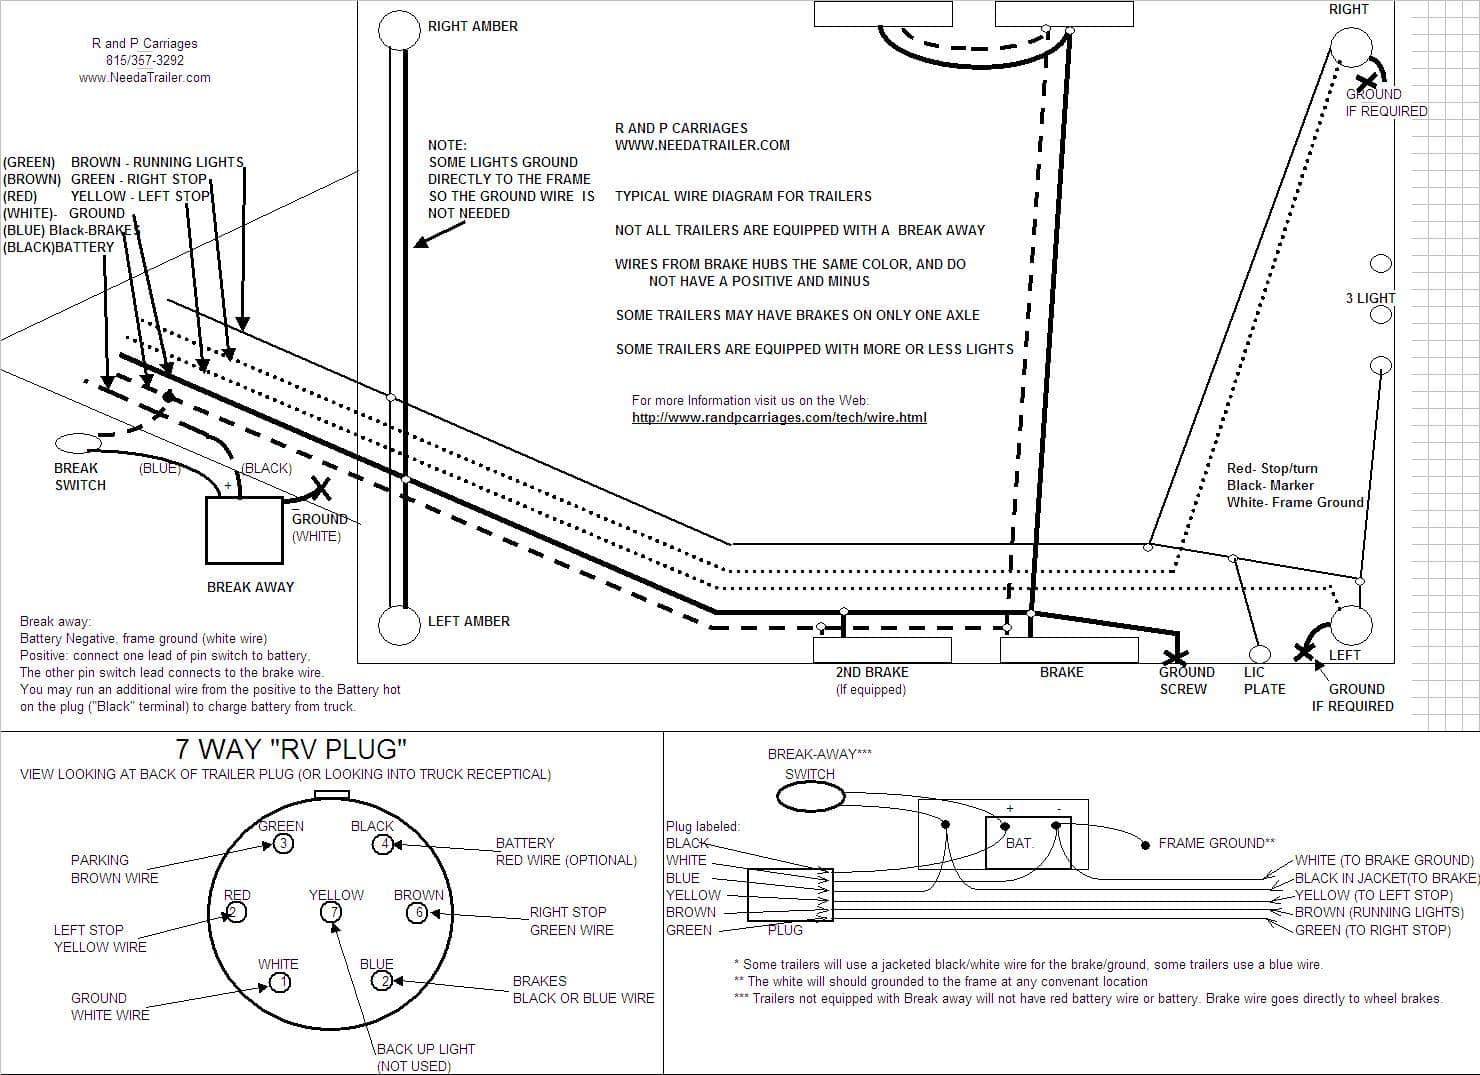 Wiring Diagram For Trailer Plug With Electric Brakes